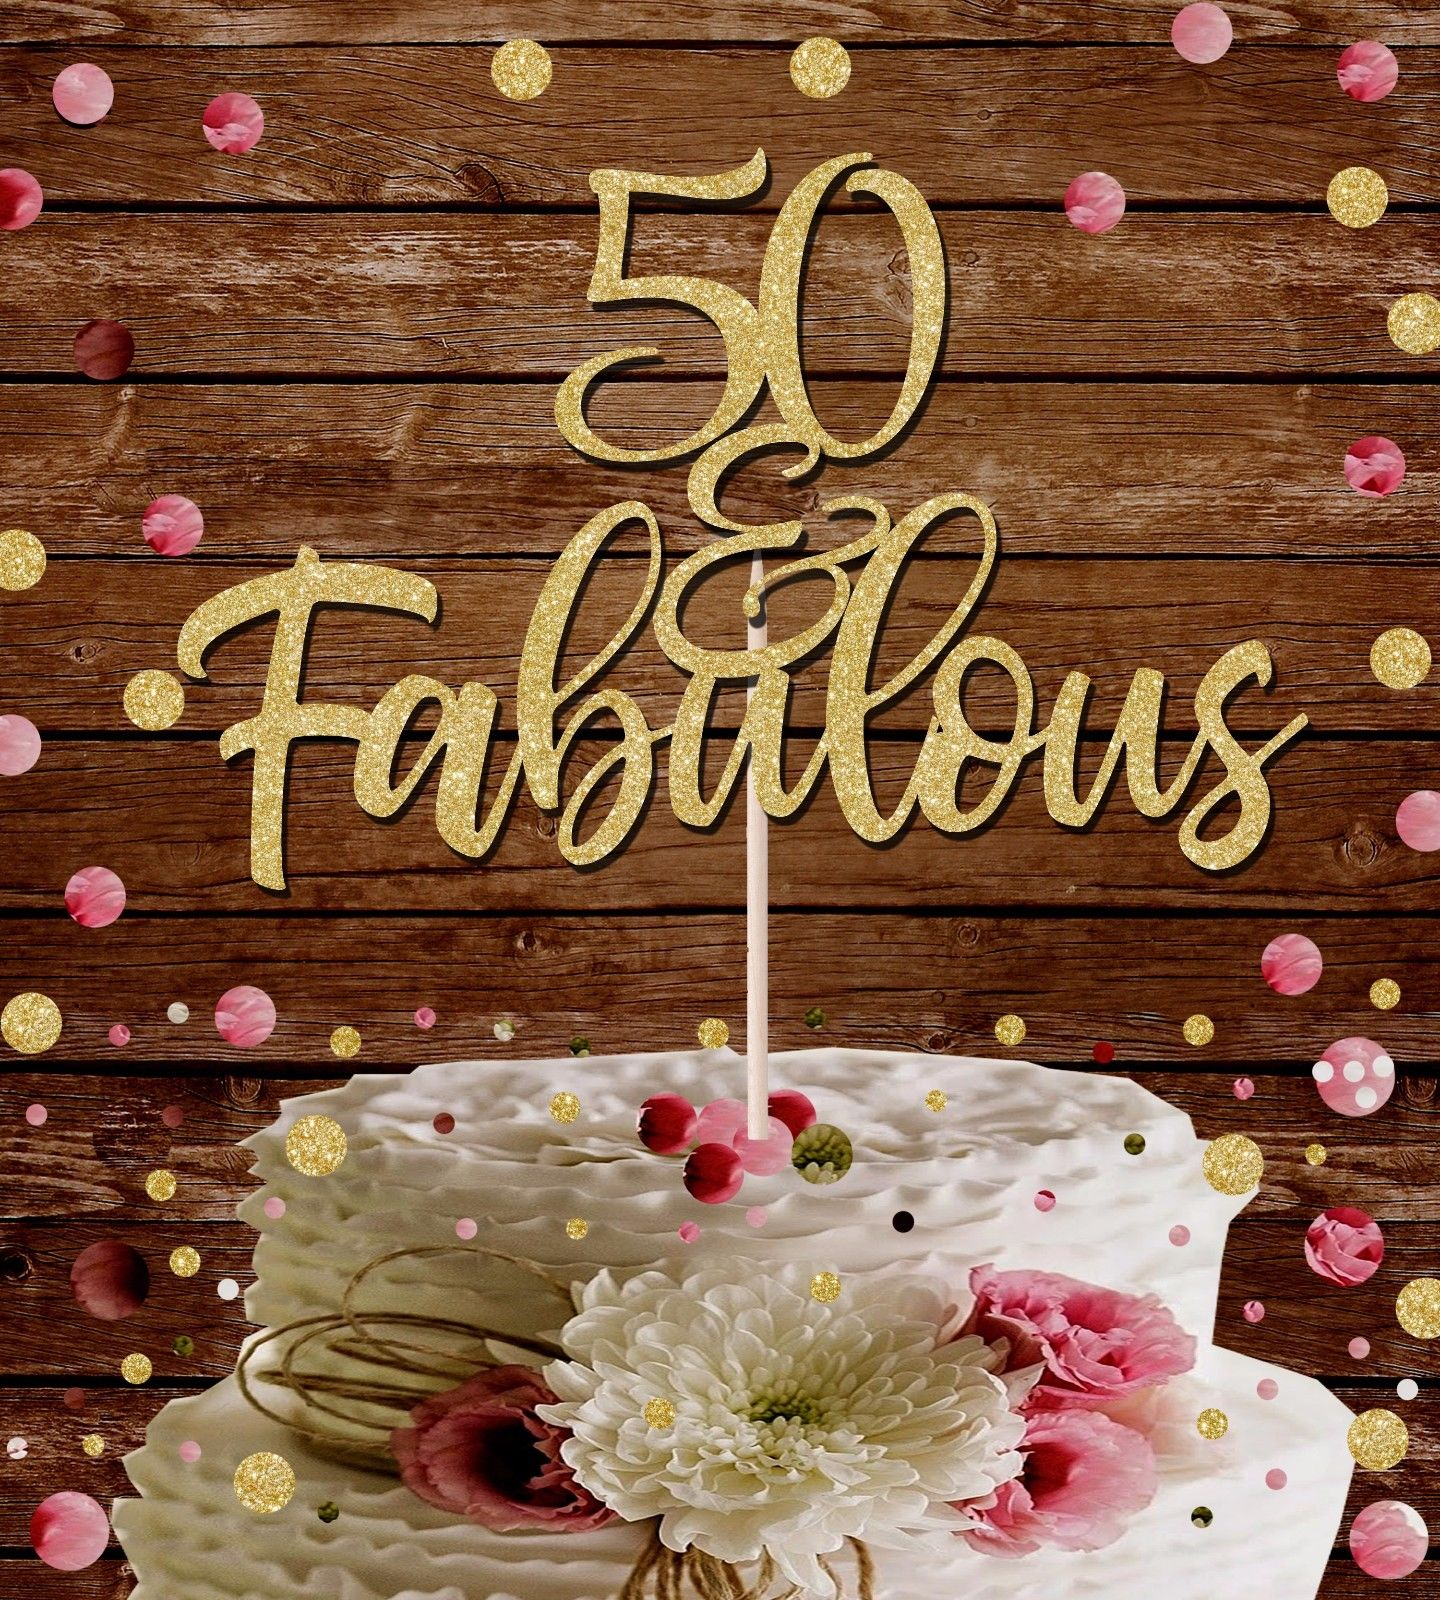 50th Birthday Cake Toppers Shop 50th Birthday Cake Toppers Online